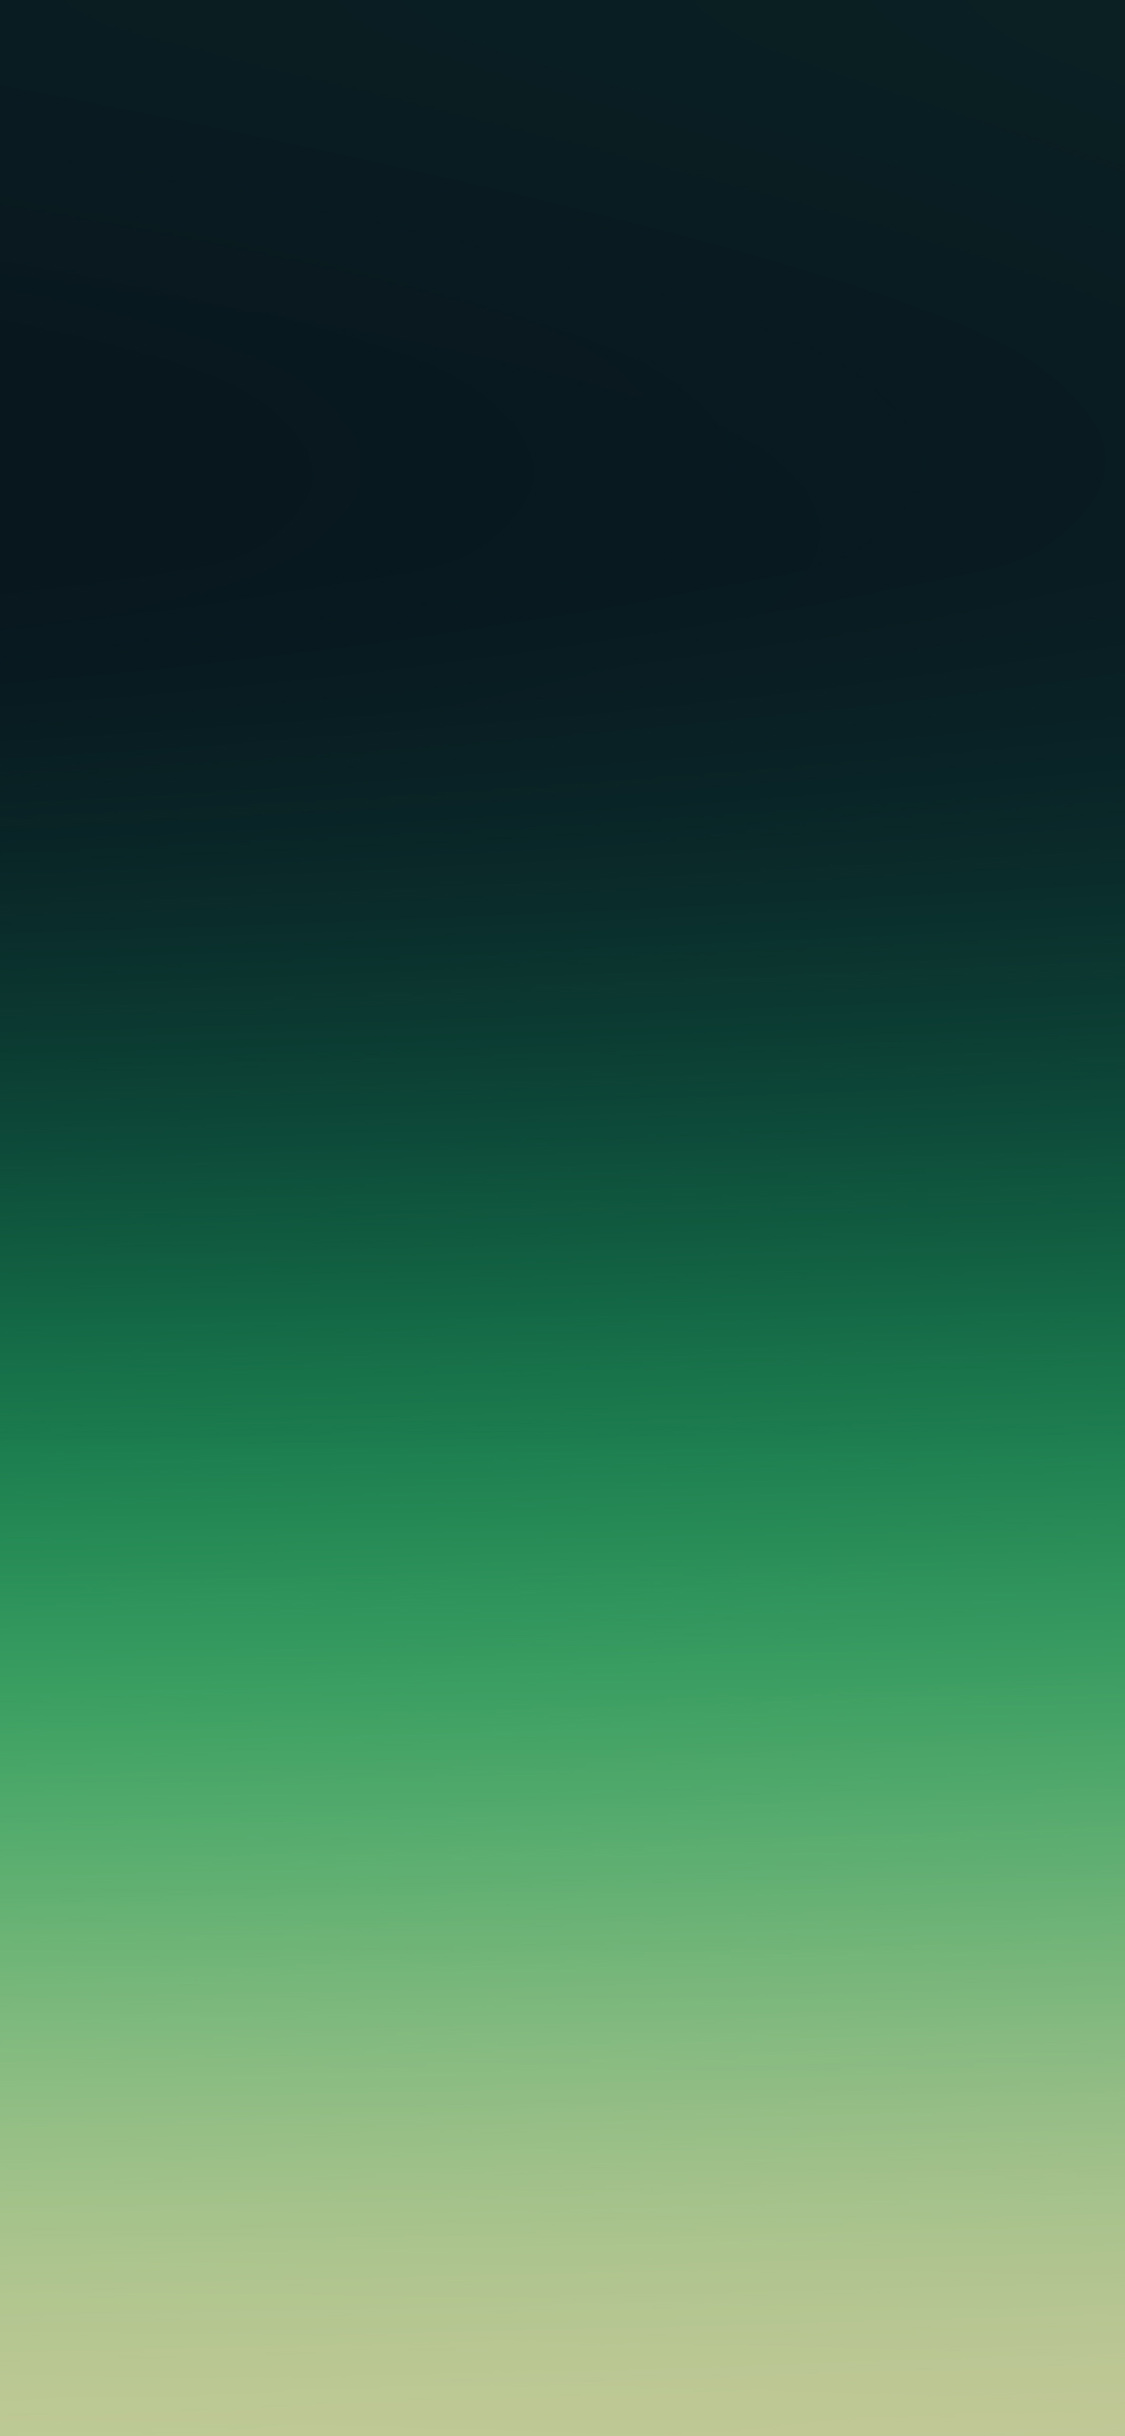 iPhoneXpapers.com-Apple-iPhone-wallpaper-sf54-green-relaxes-your-eye-gradation-blur